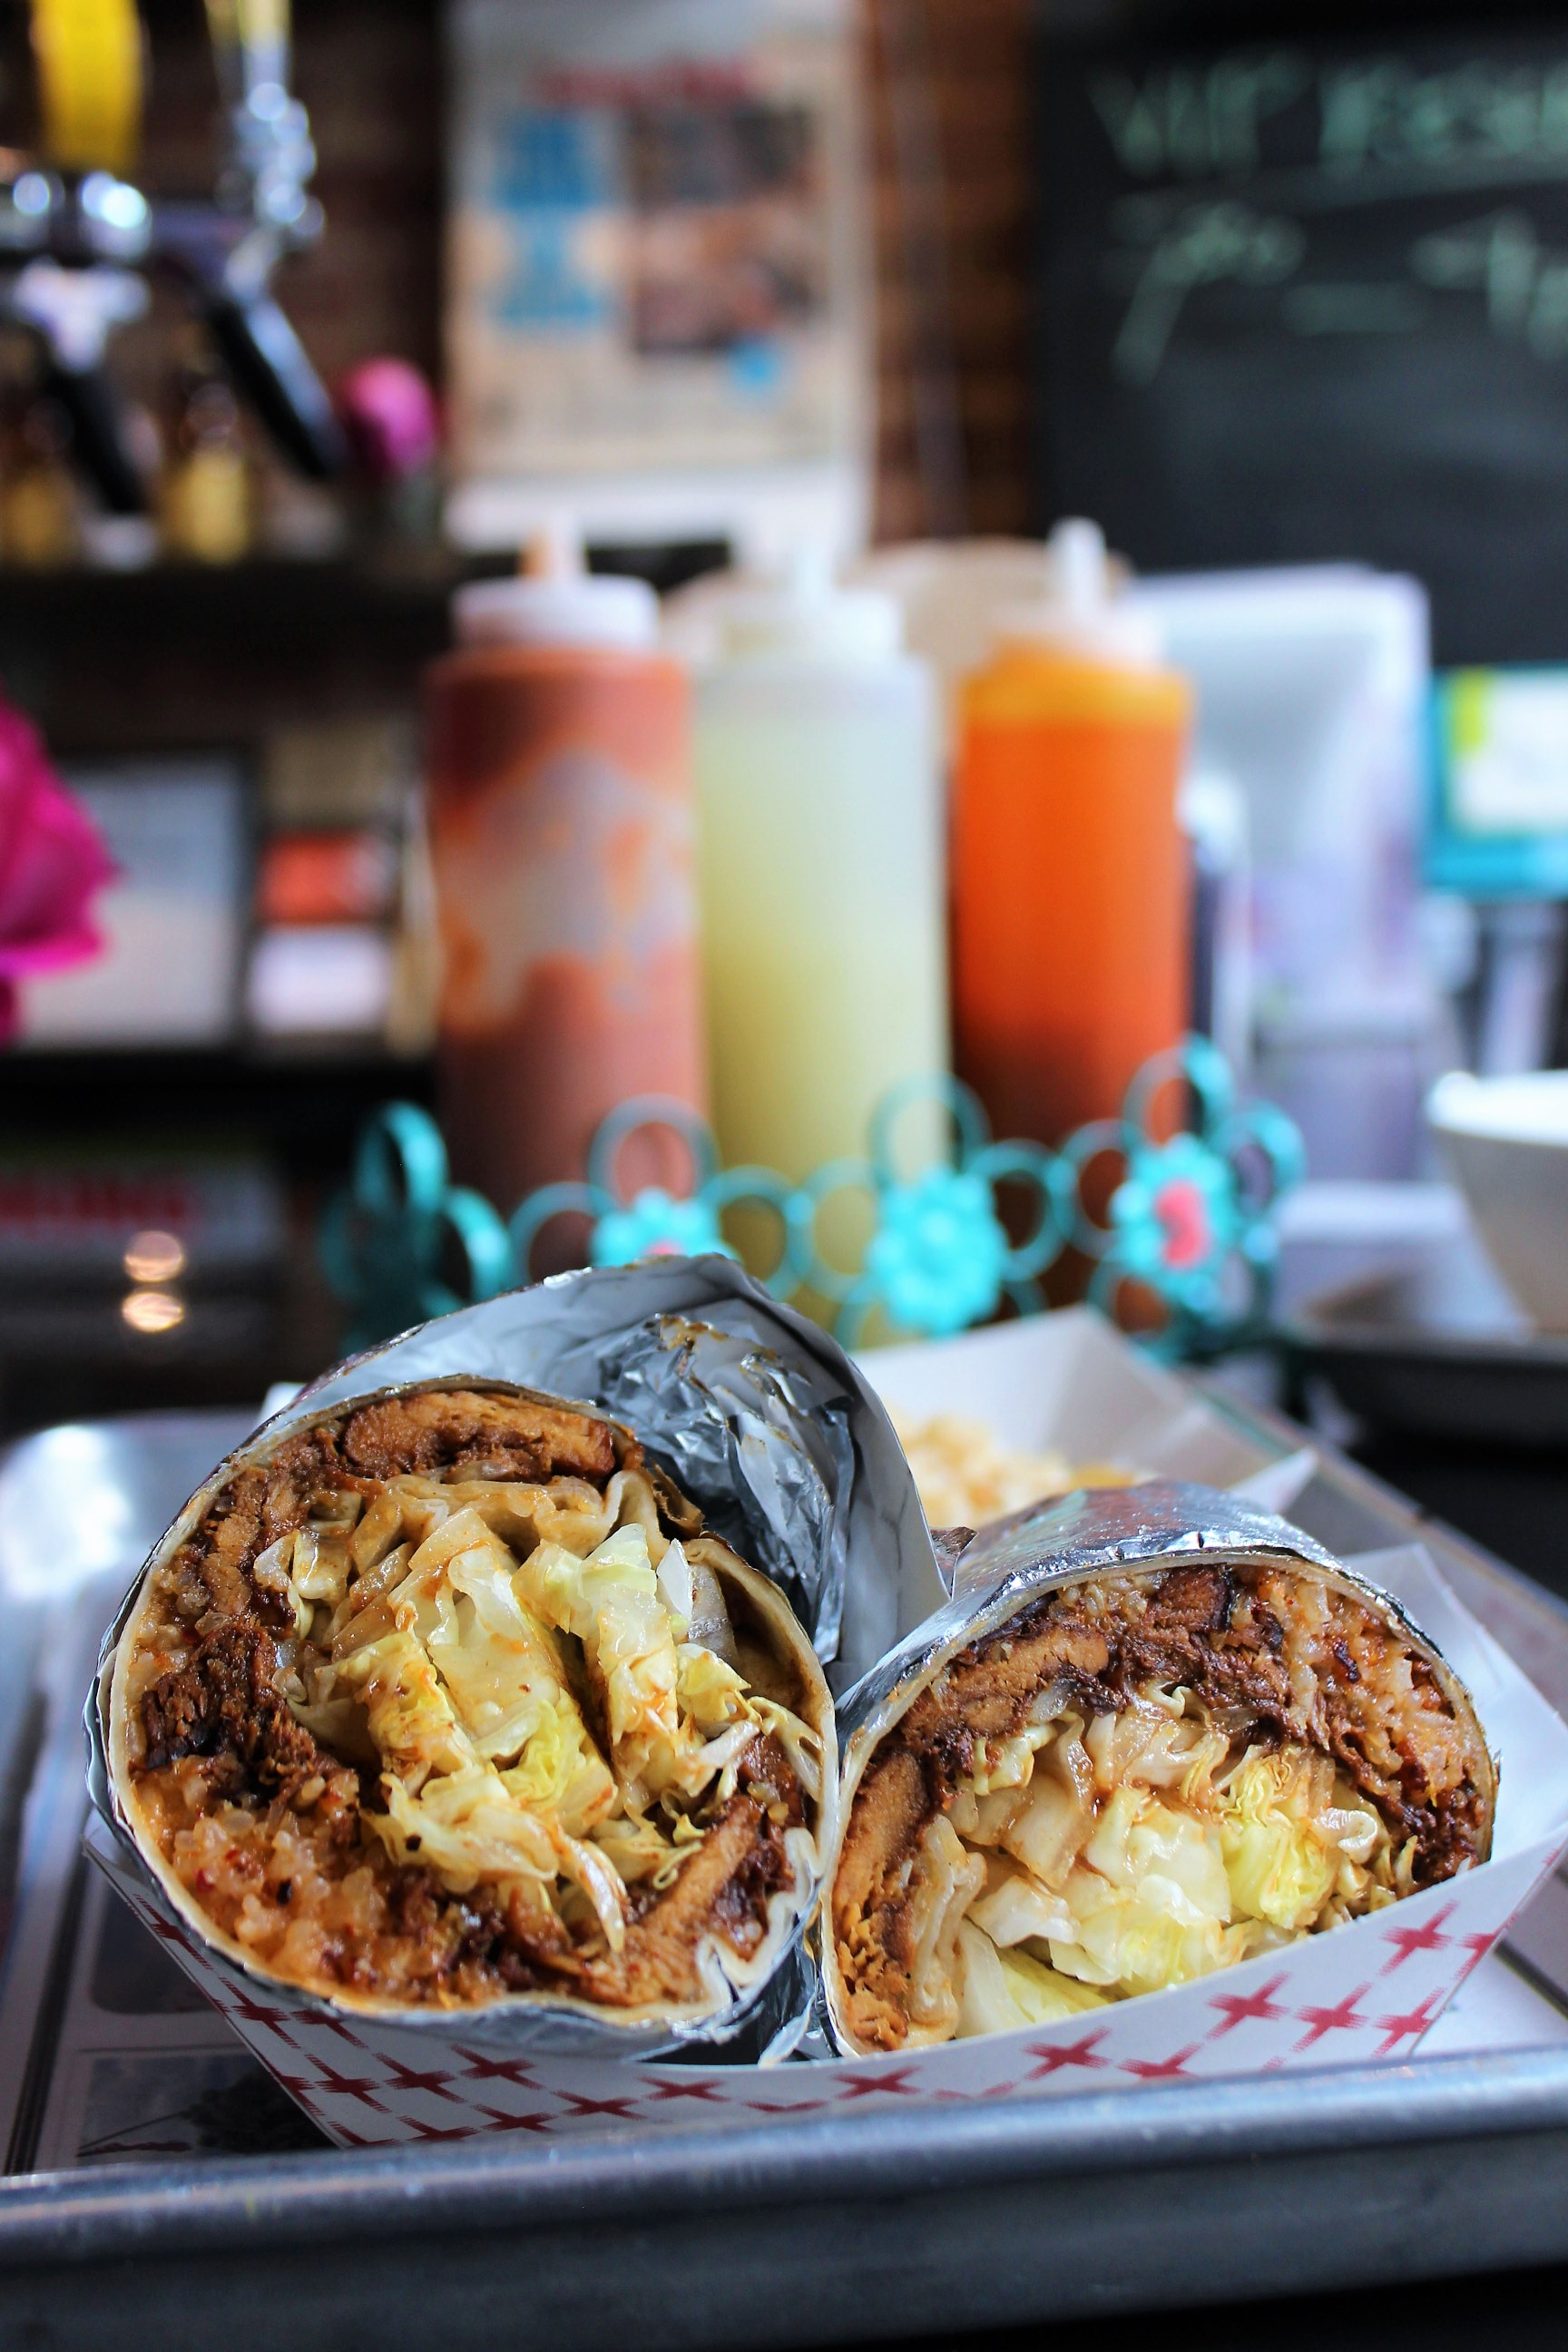 Adobo-Rito (Soy-Braised Chicken Burrito with Kimchi Fried Rice and Shredded Romaine)